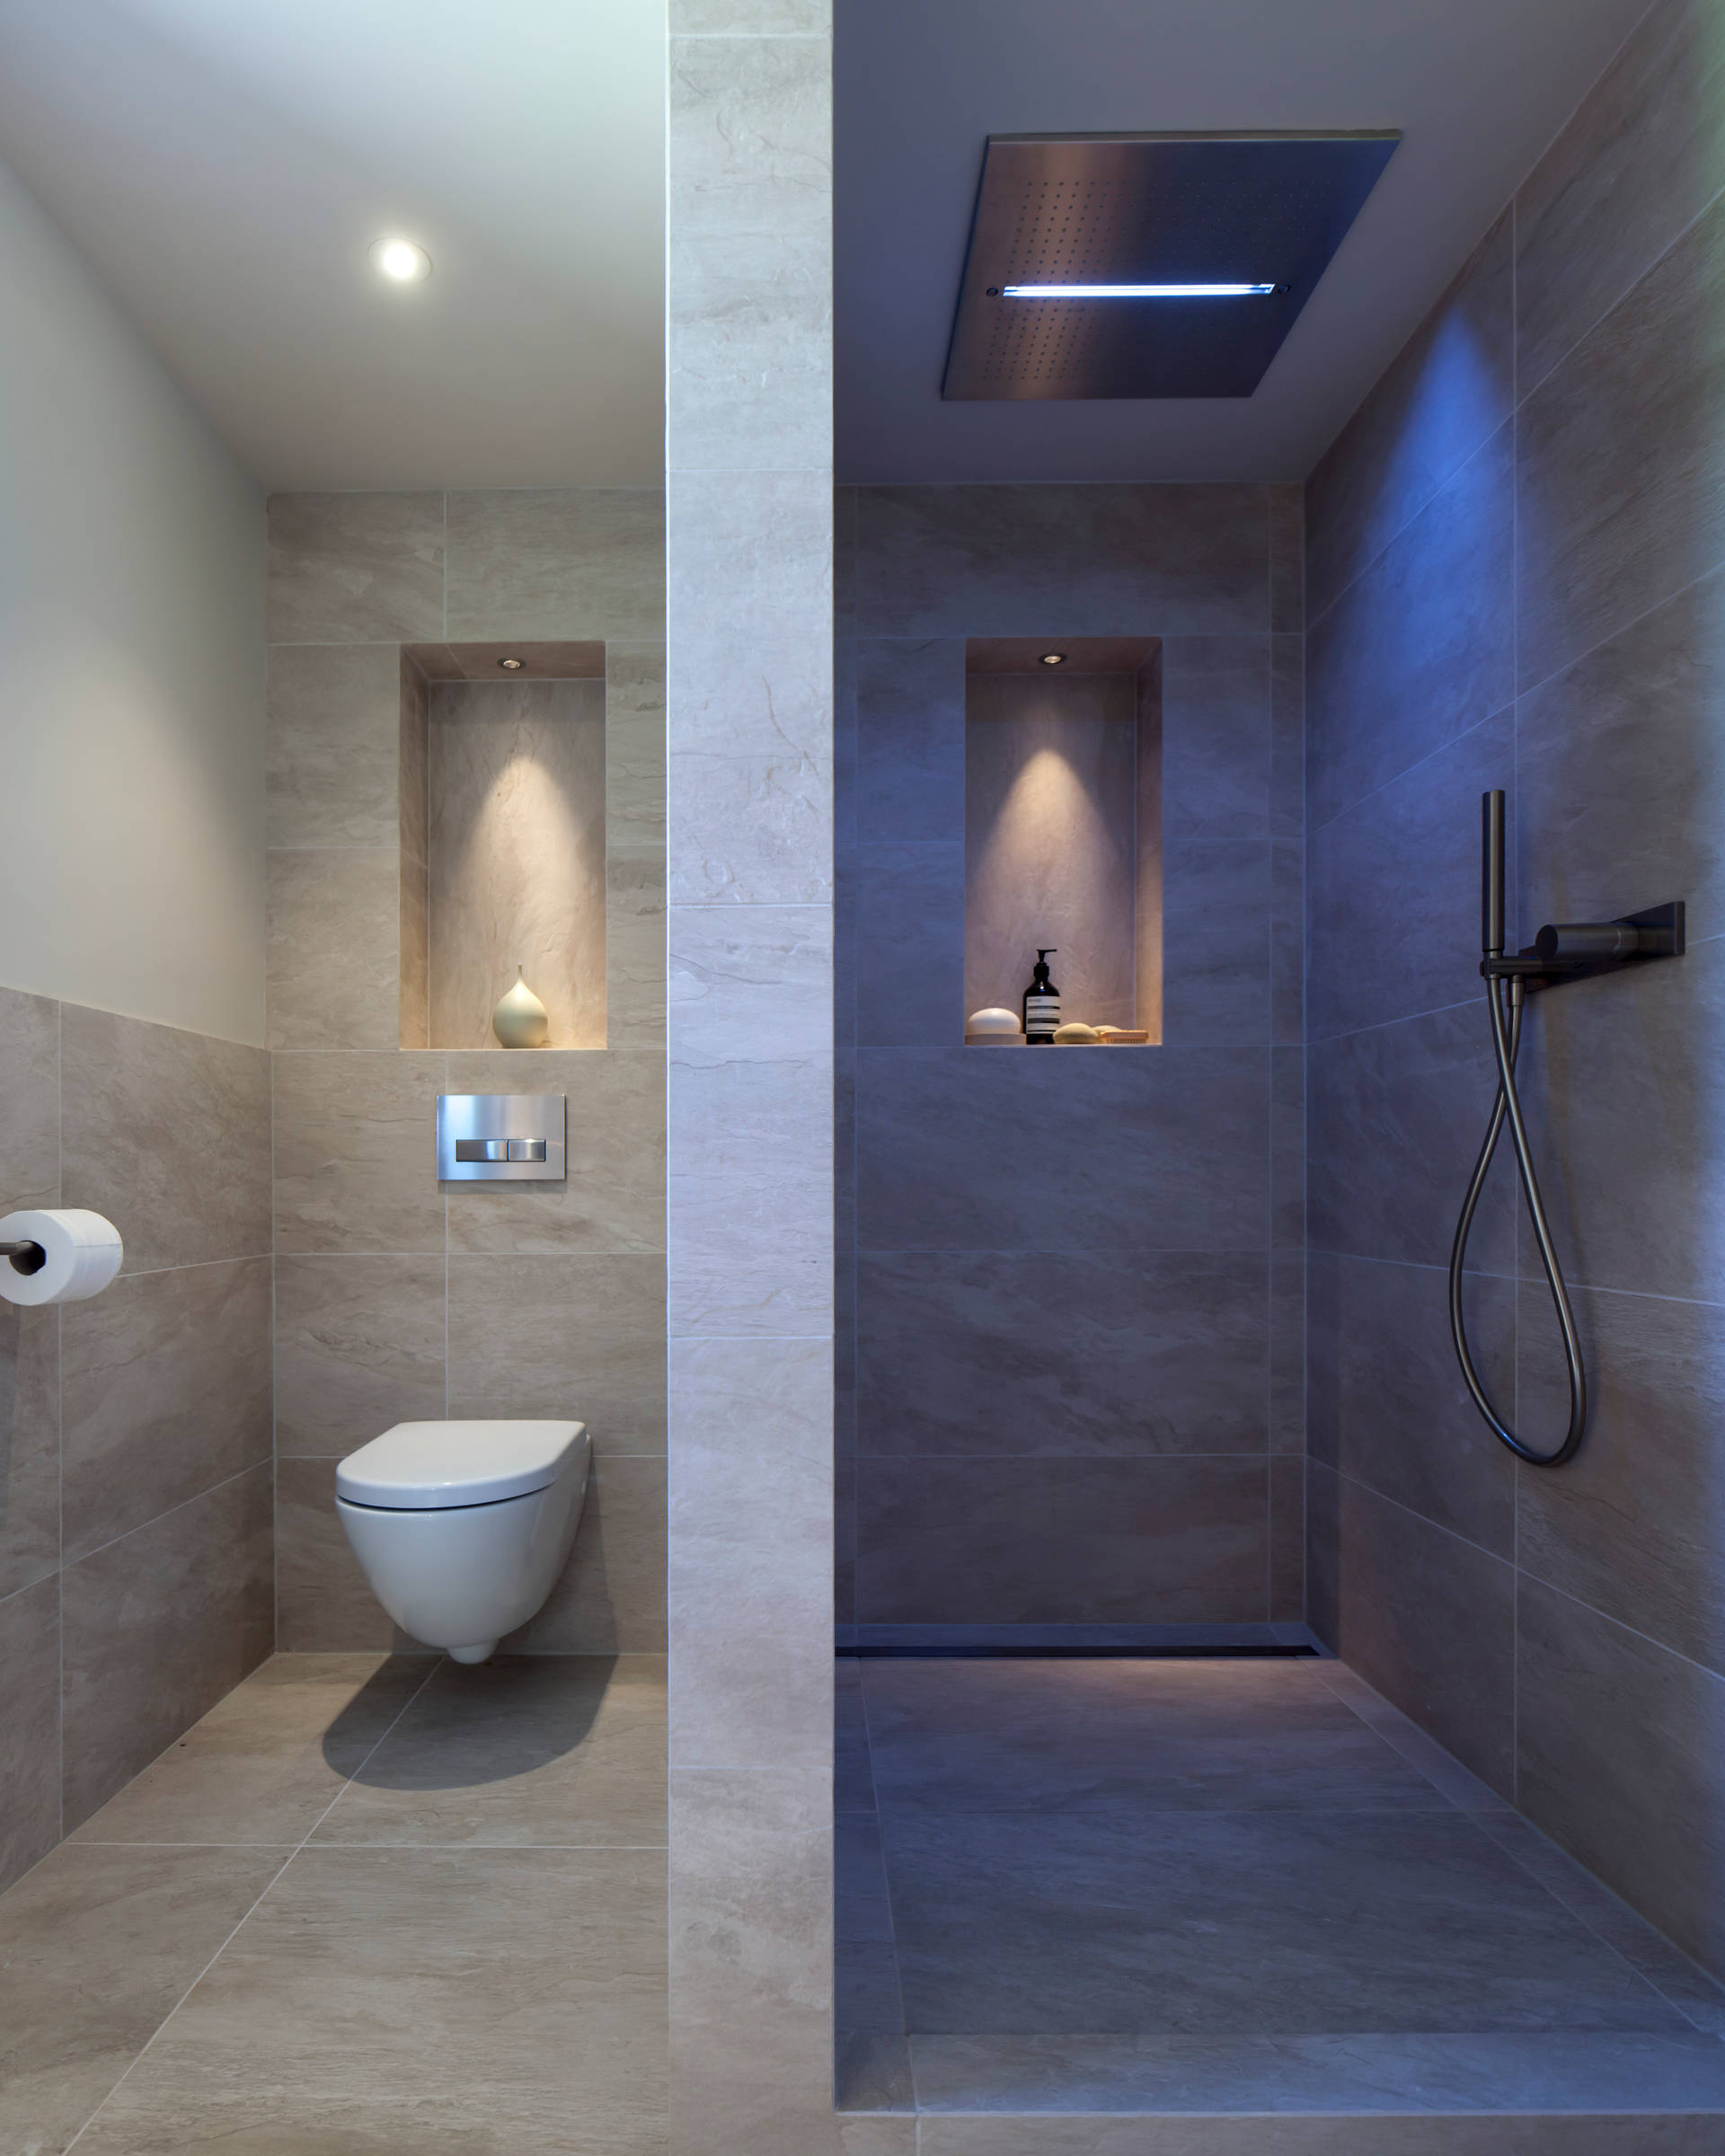 8 Beautiful Bathroom Niche Pictures & Ideas  Houzz